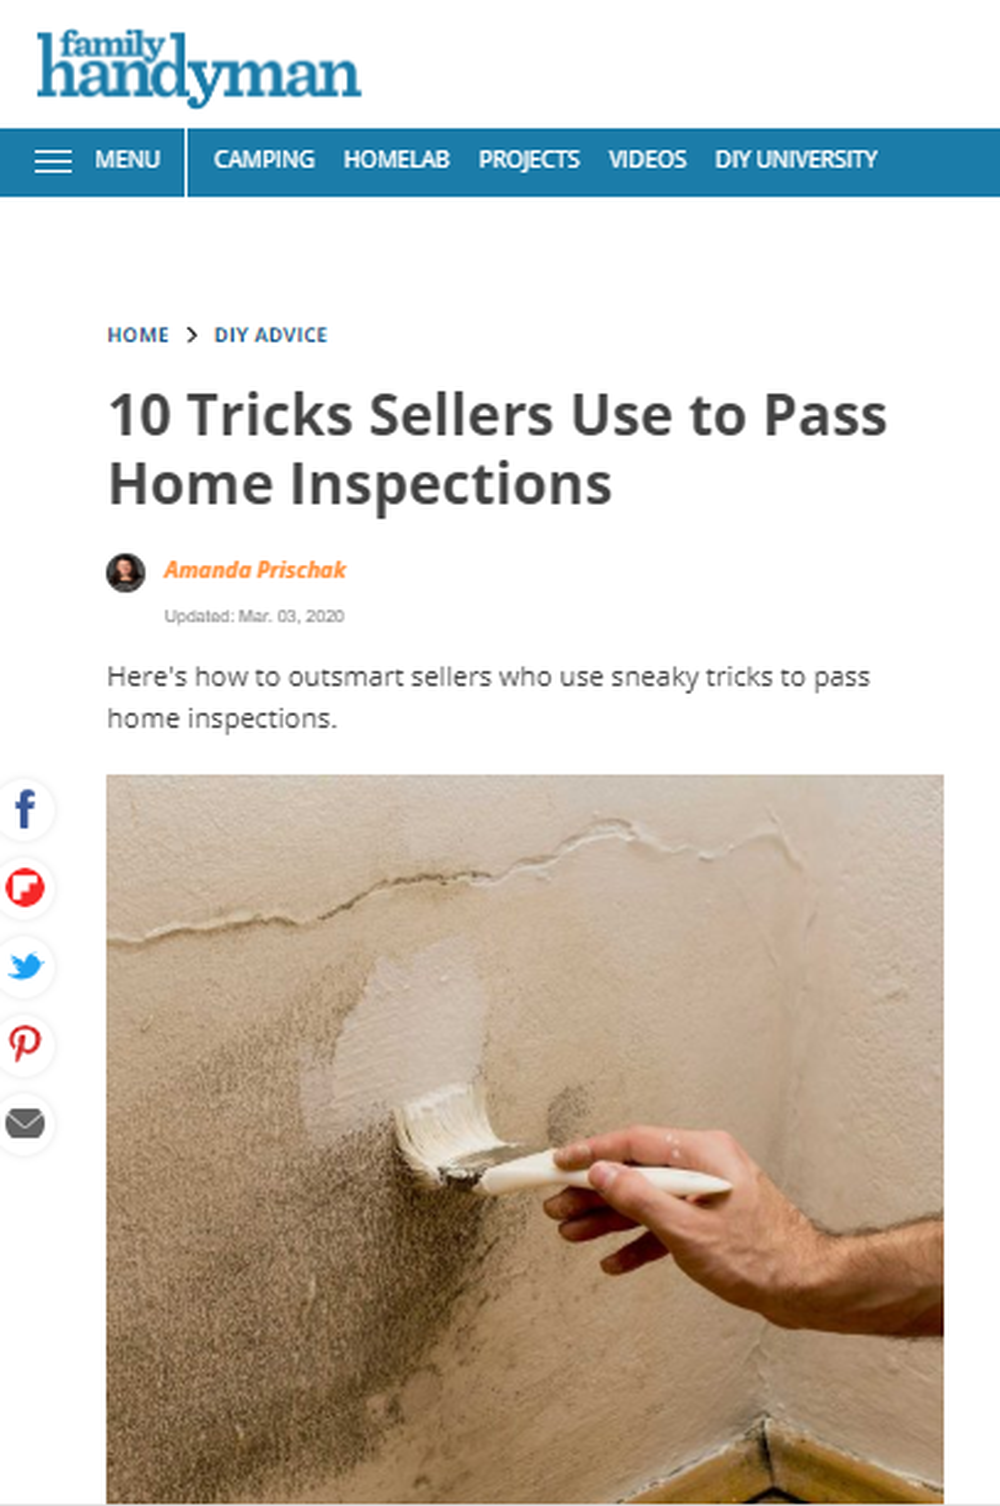 10_Tricks_Sellers_Use_to_Pass_Home_Inspections.png